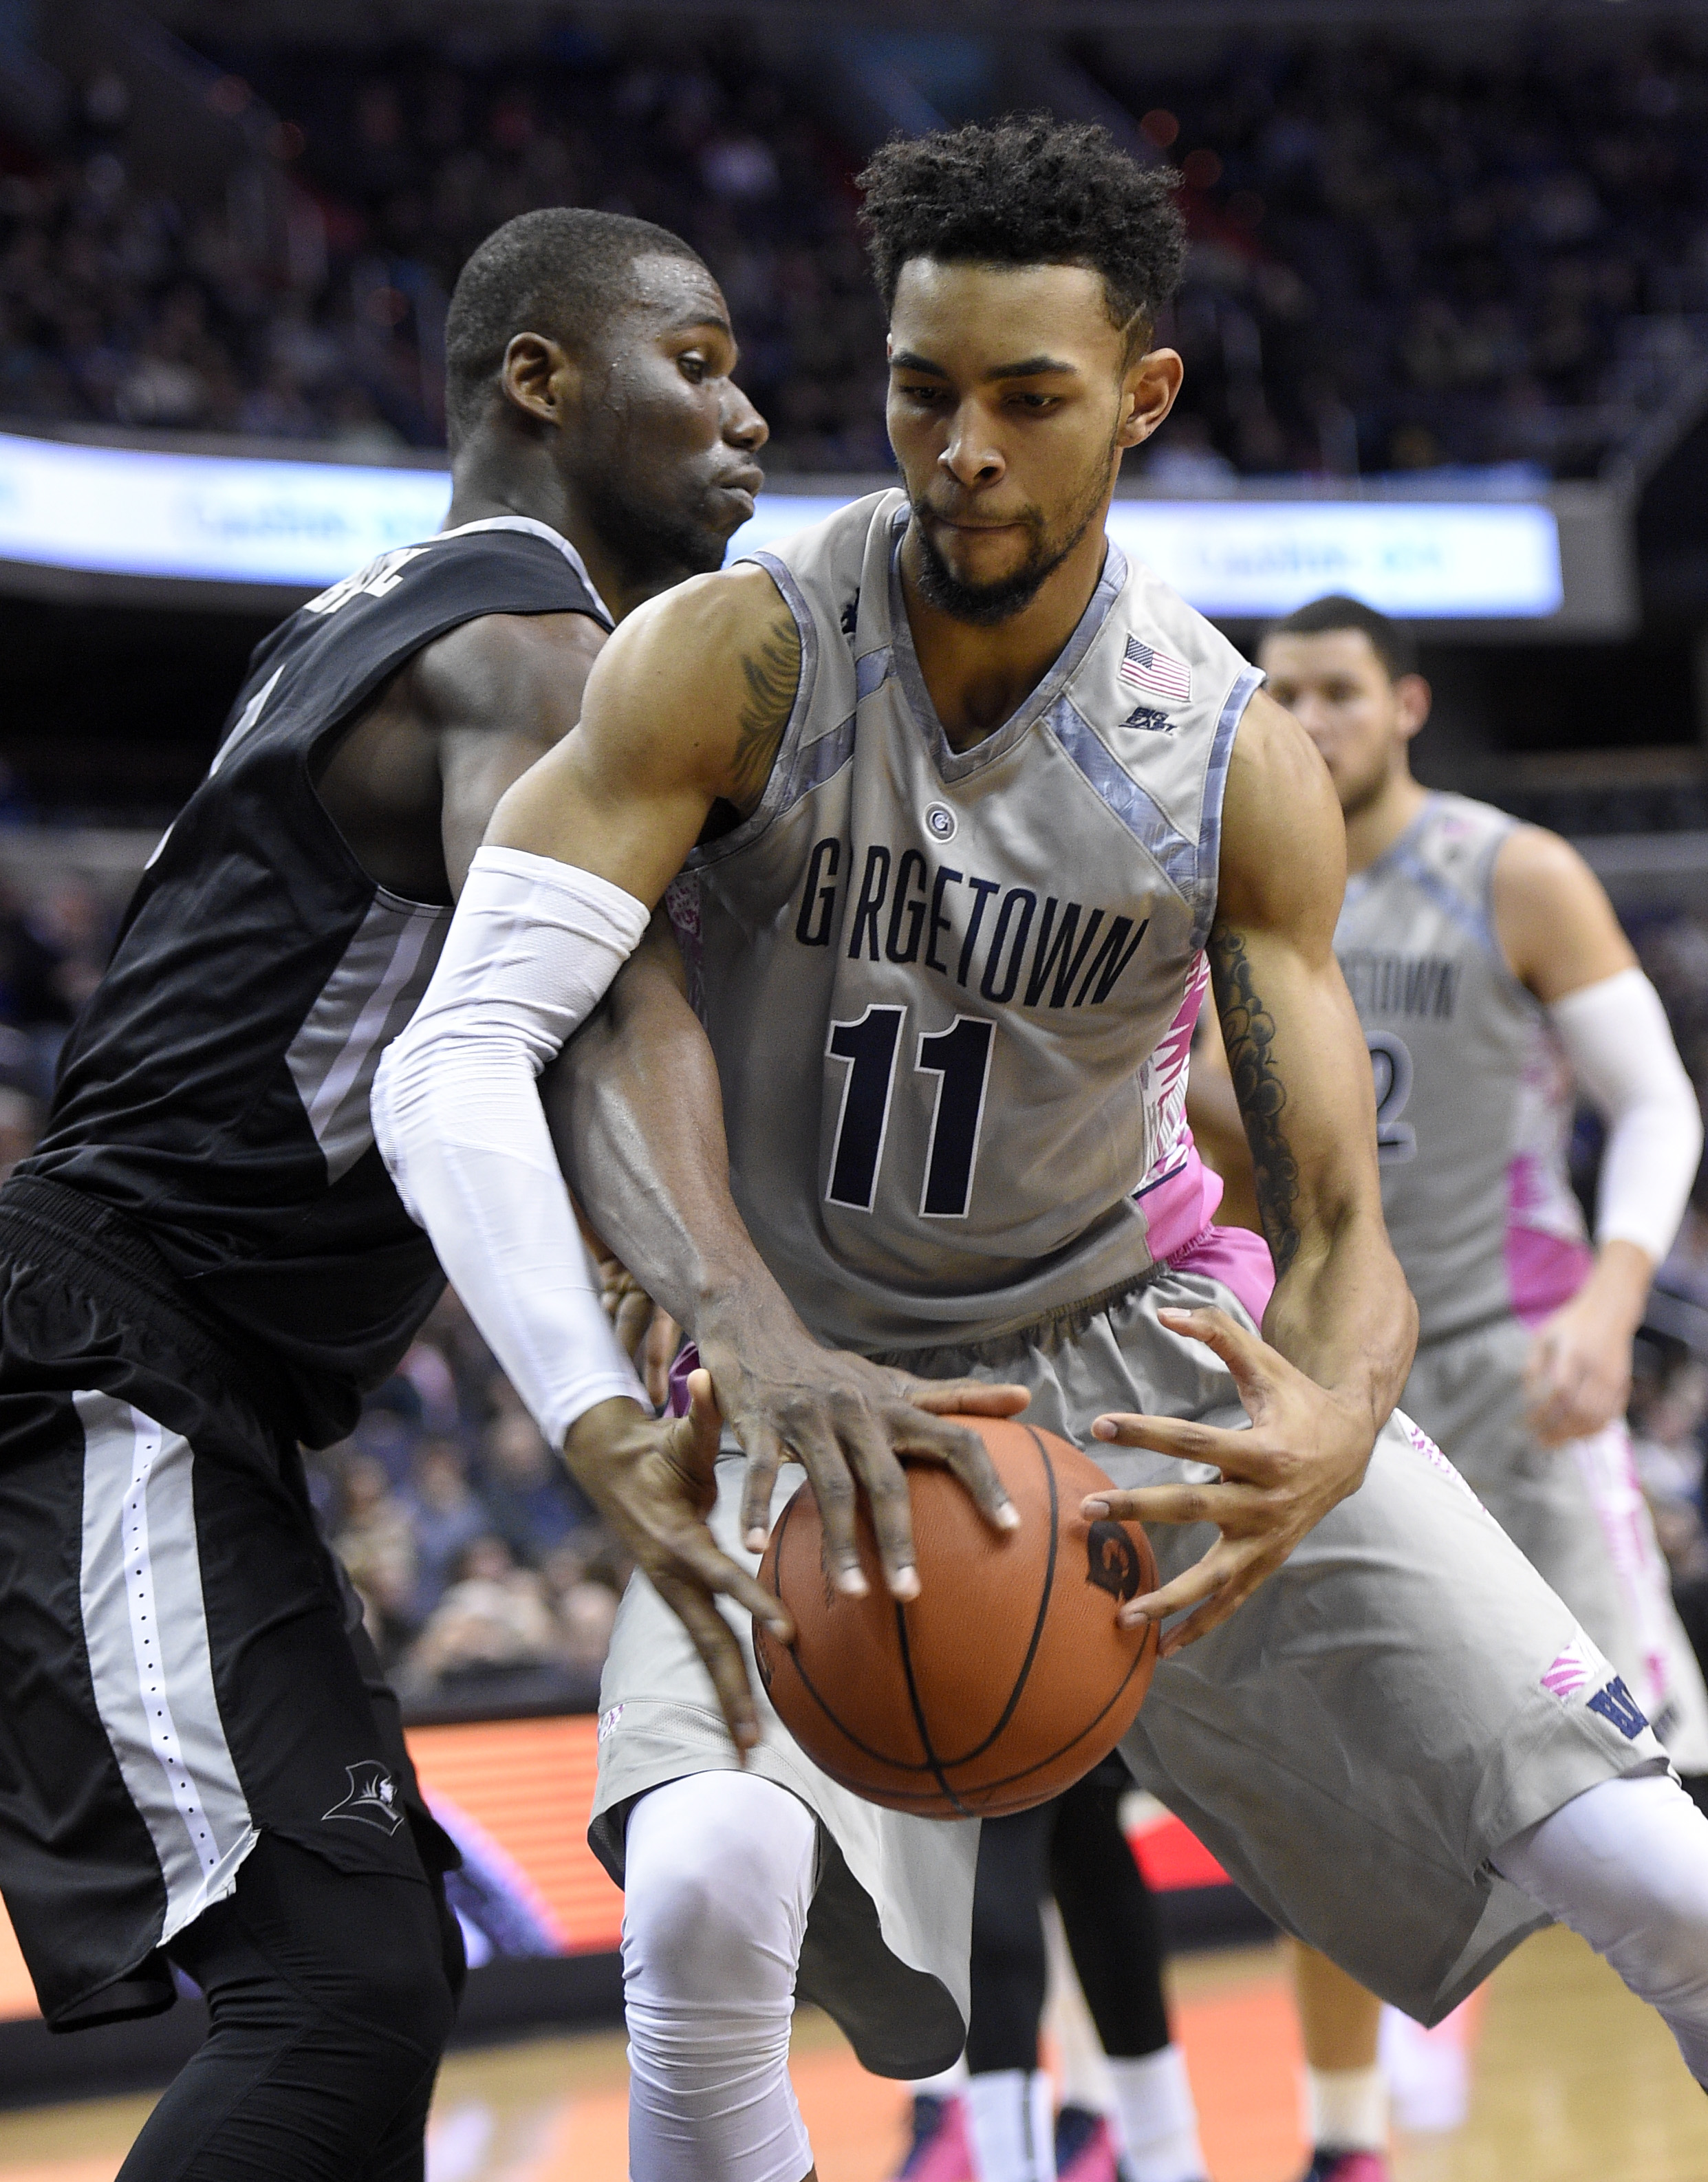 Providence forward Ben Bentil, left, reaches for the ball against Georgetown forward Isaac Copeland (11) during the second half of an NCAA college basketball game Saturday, Jan. 30, 2016, in Washington. Providence won 73-69. (AP Photo/Nick Wass)